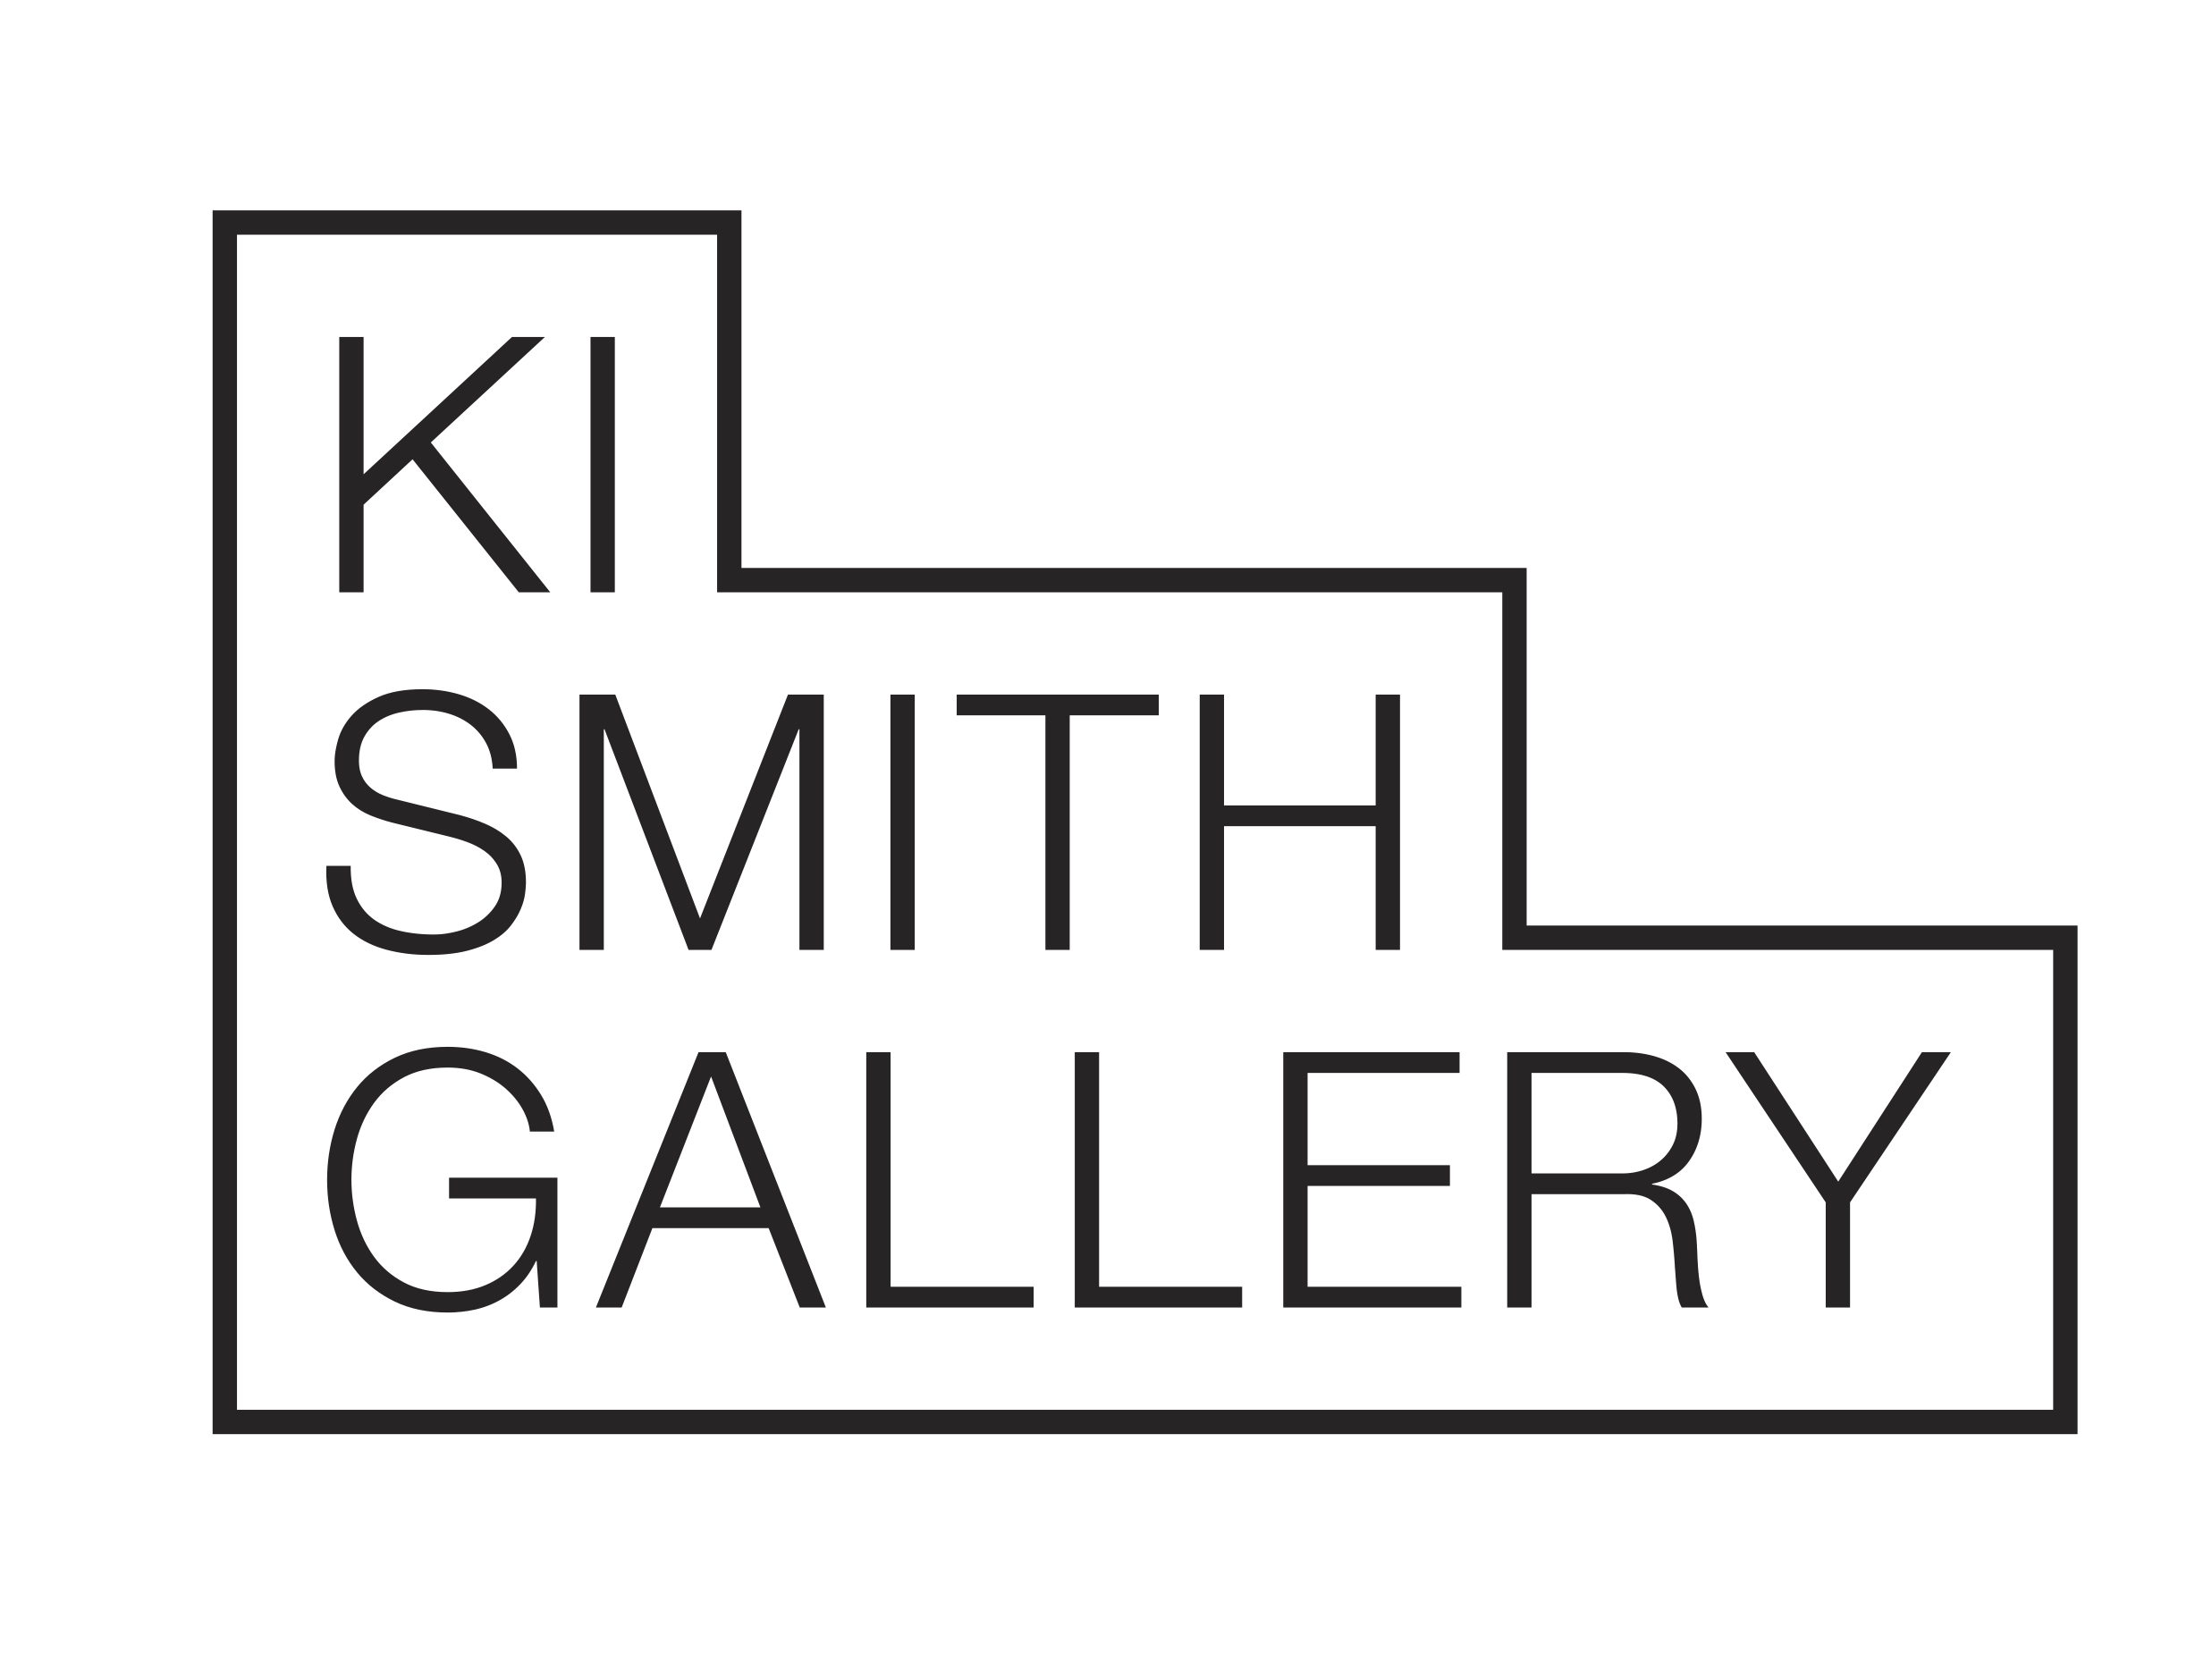 KiSmithGallery_2019_Logo-FINAL copy.jpg